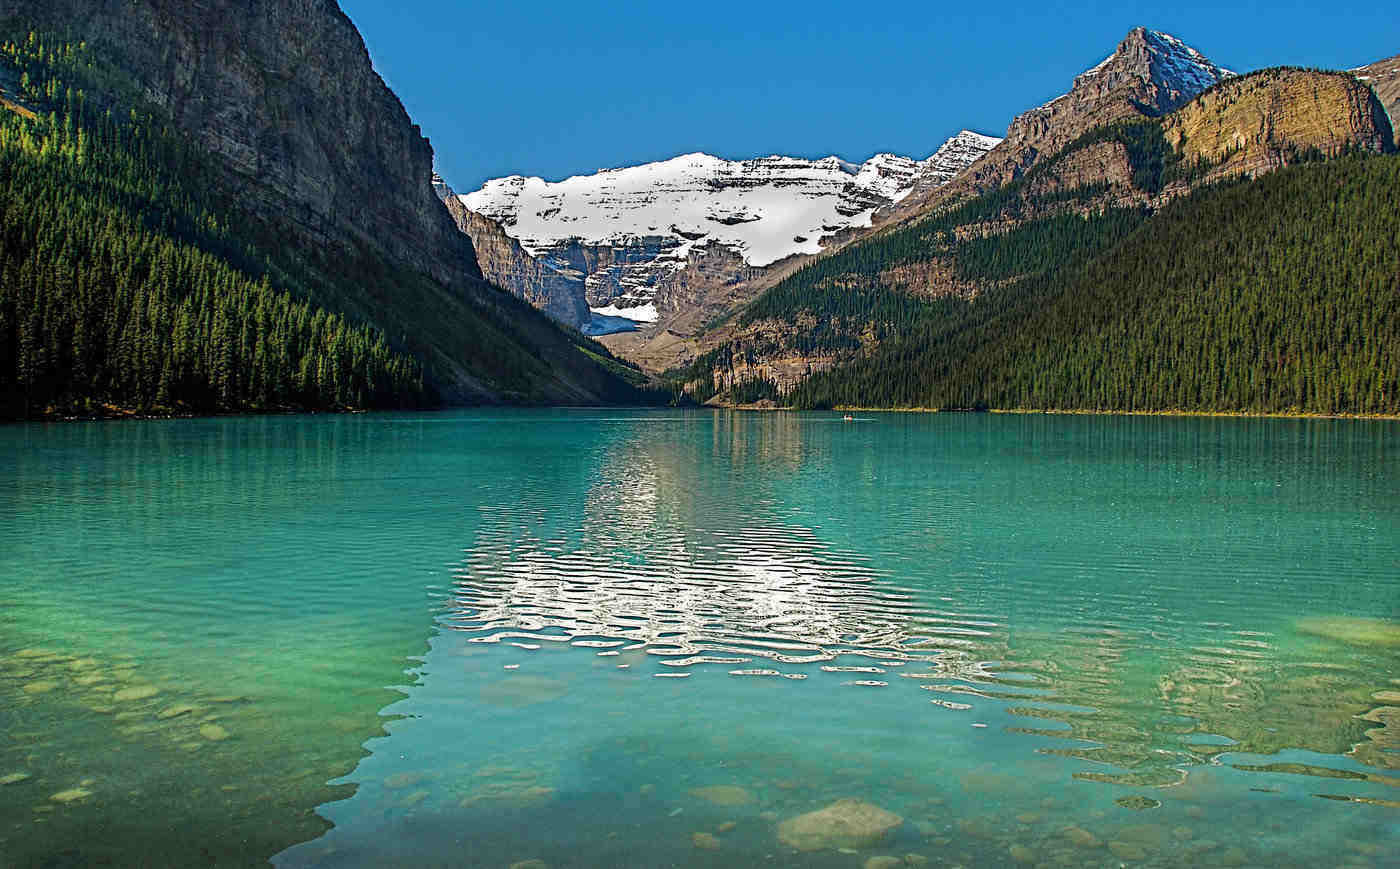 lake louise - spectacular lakes to visit in canada in 2019